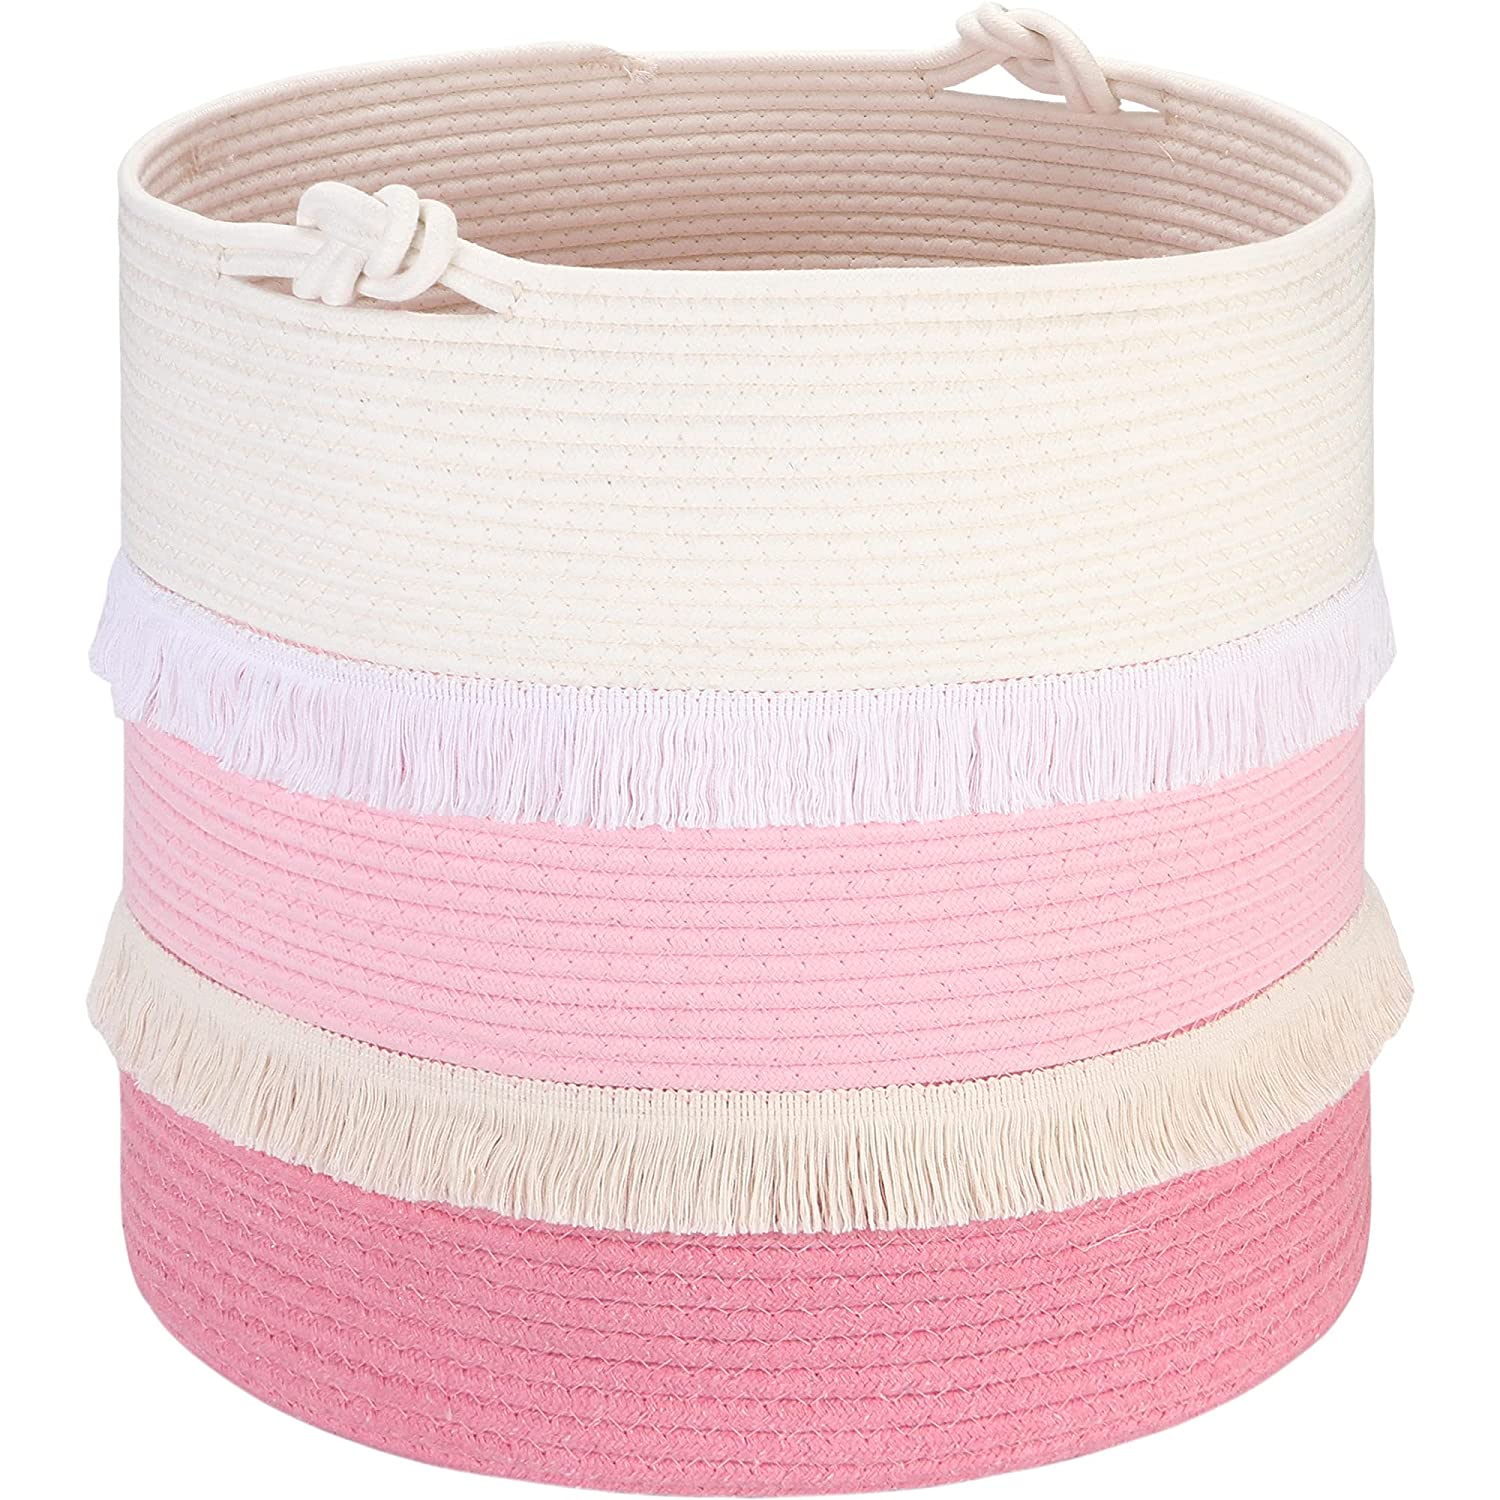 Sea Team Large Size Cotton Rope Basket with Decorative Macrame Patchwork, Cute Tassel Woven Storage Bin, Laundry Hamper, Clothes, Toys, Blankets Organizer for Baby Girls, 17 x 17 Inches, Pink